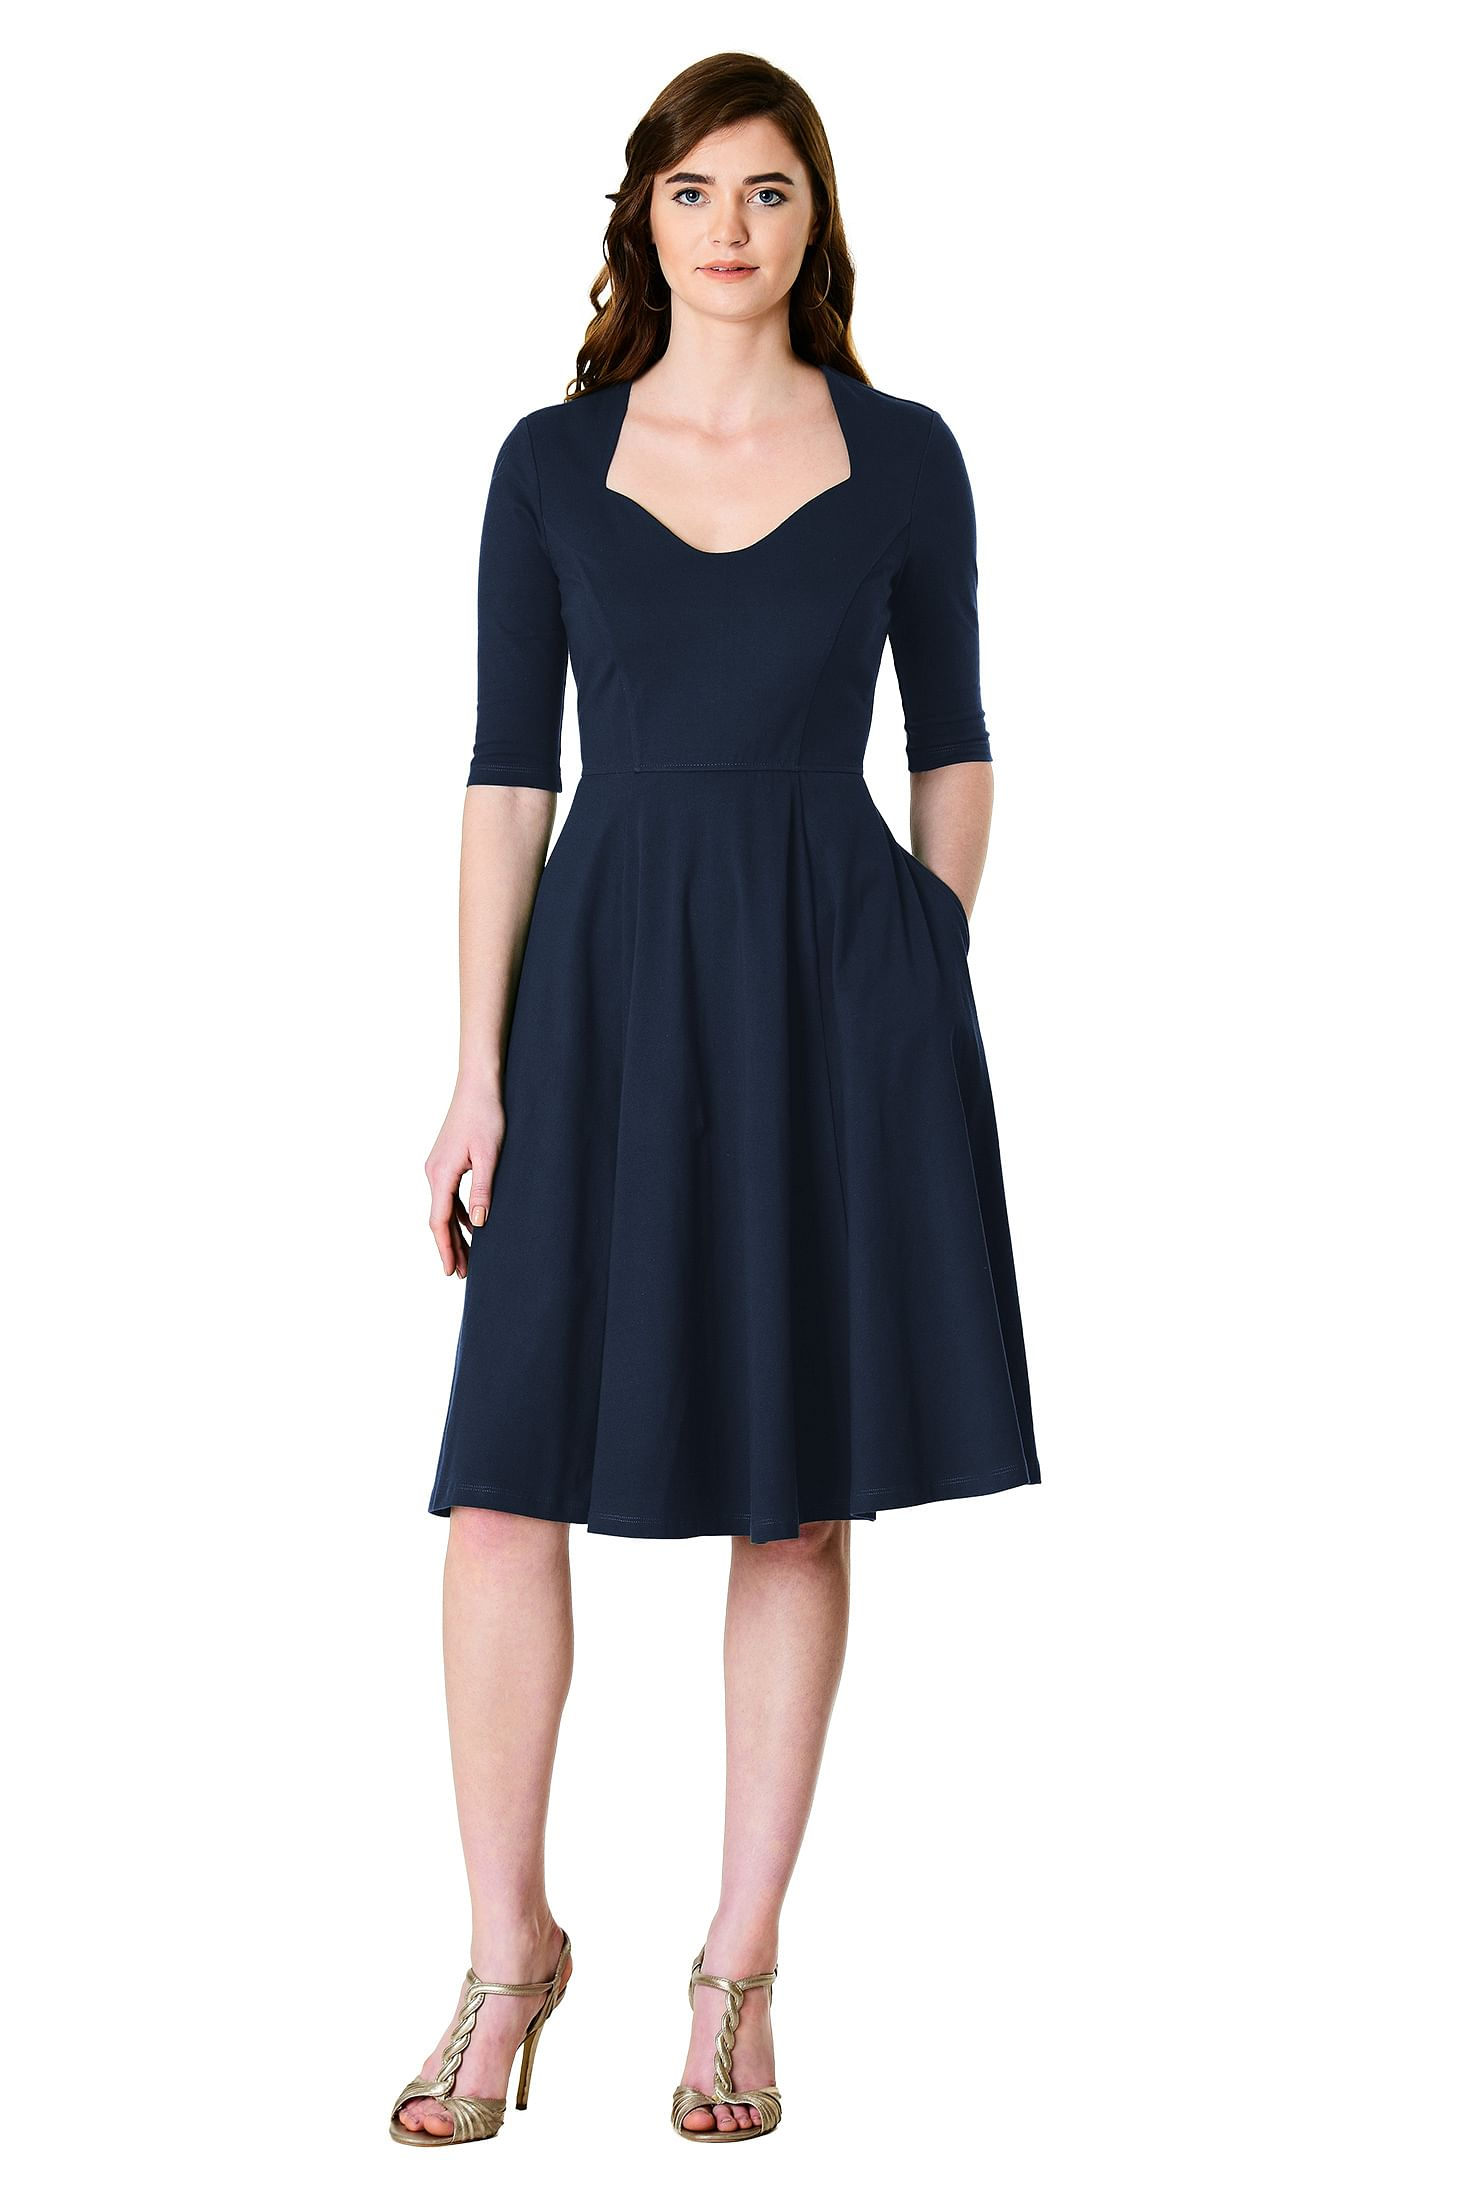 af716c4c5a3e below knee length dresses, cotton/spandex Dresses, day dresses, Deep Navy